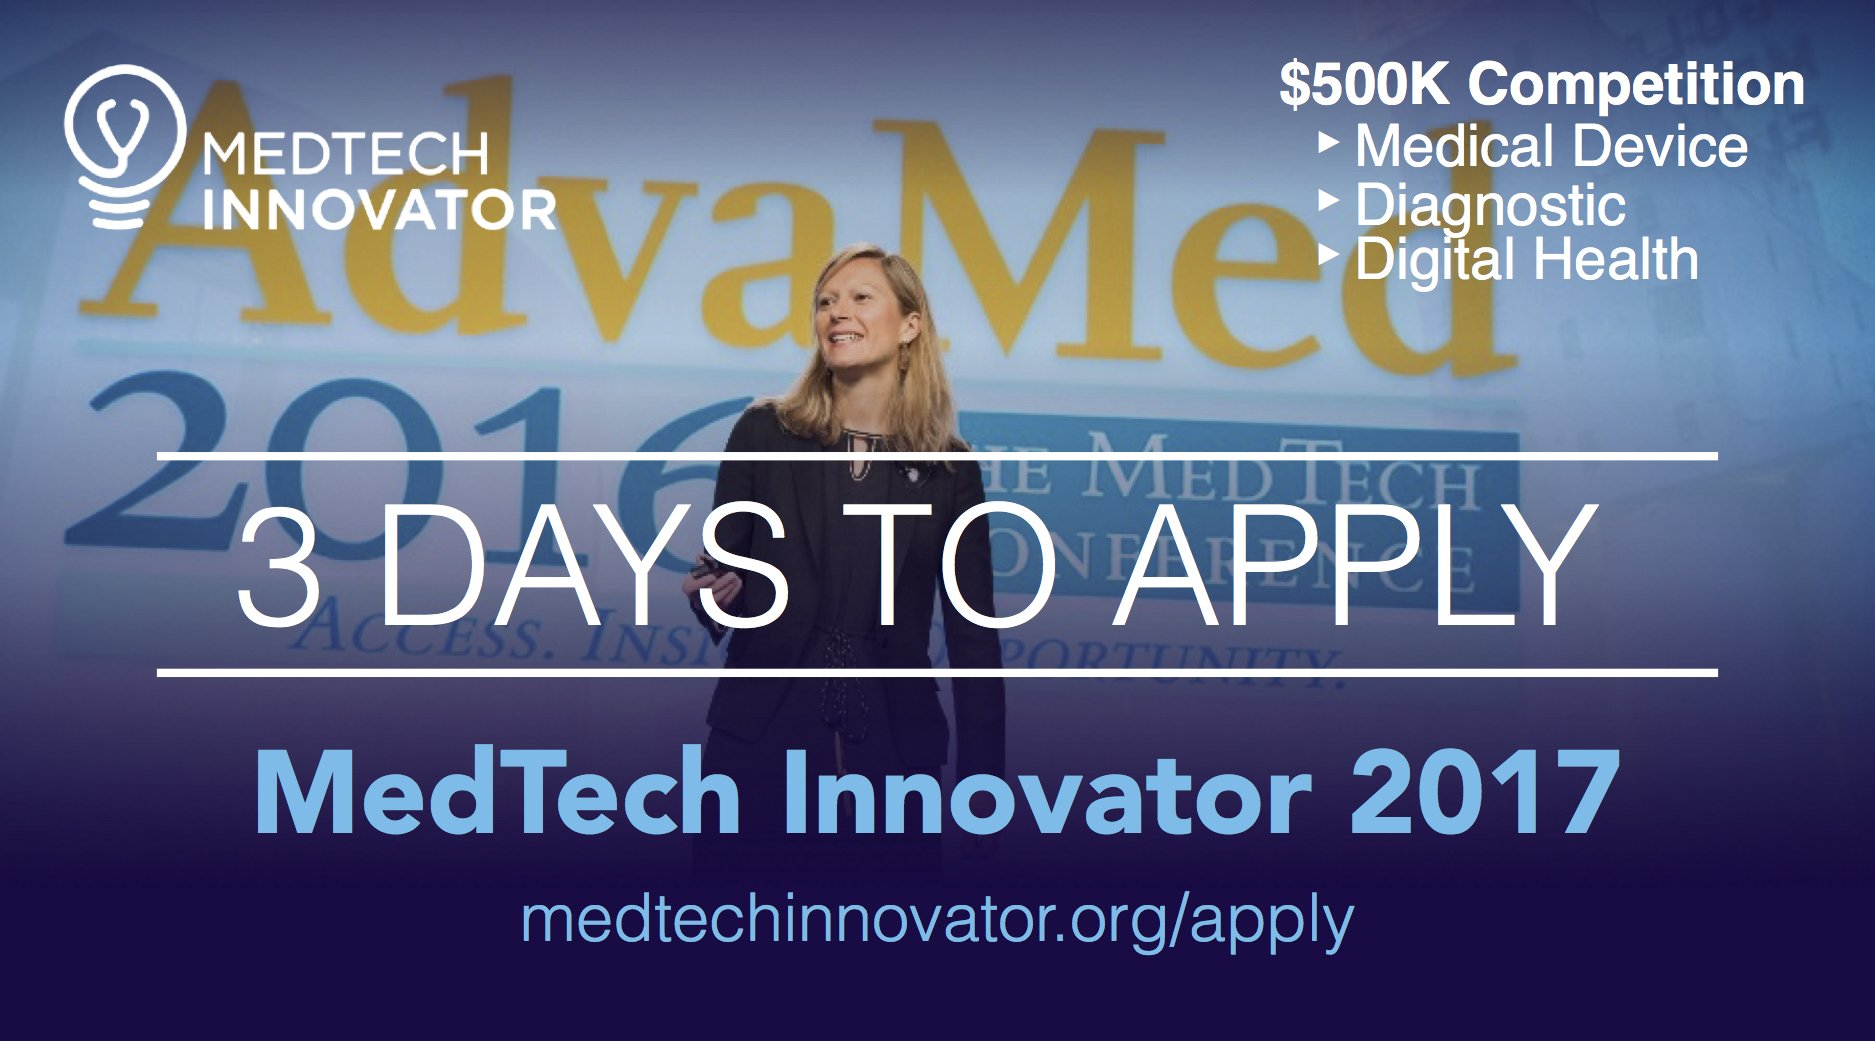 MedTech Innovator Competition.jpg-large.jpeg